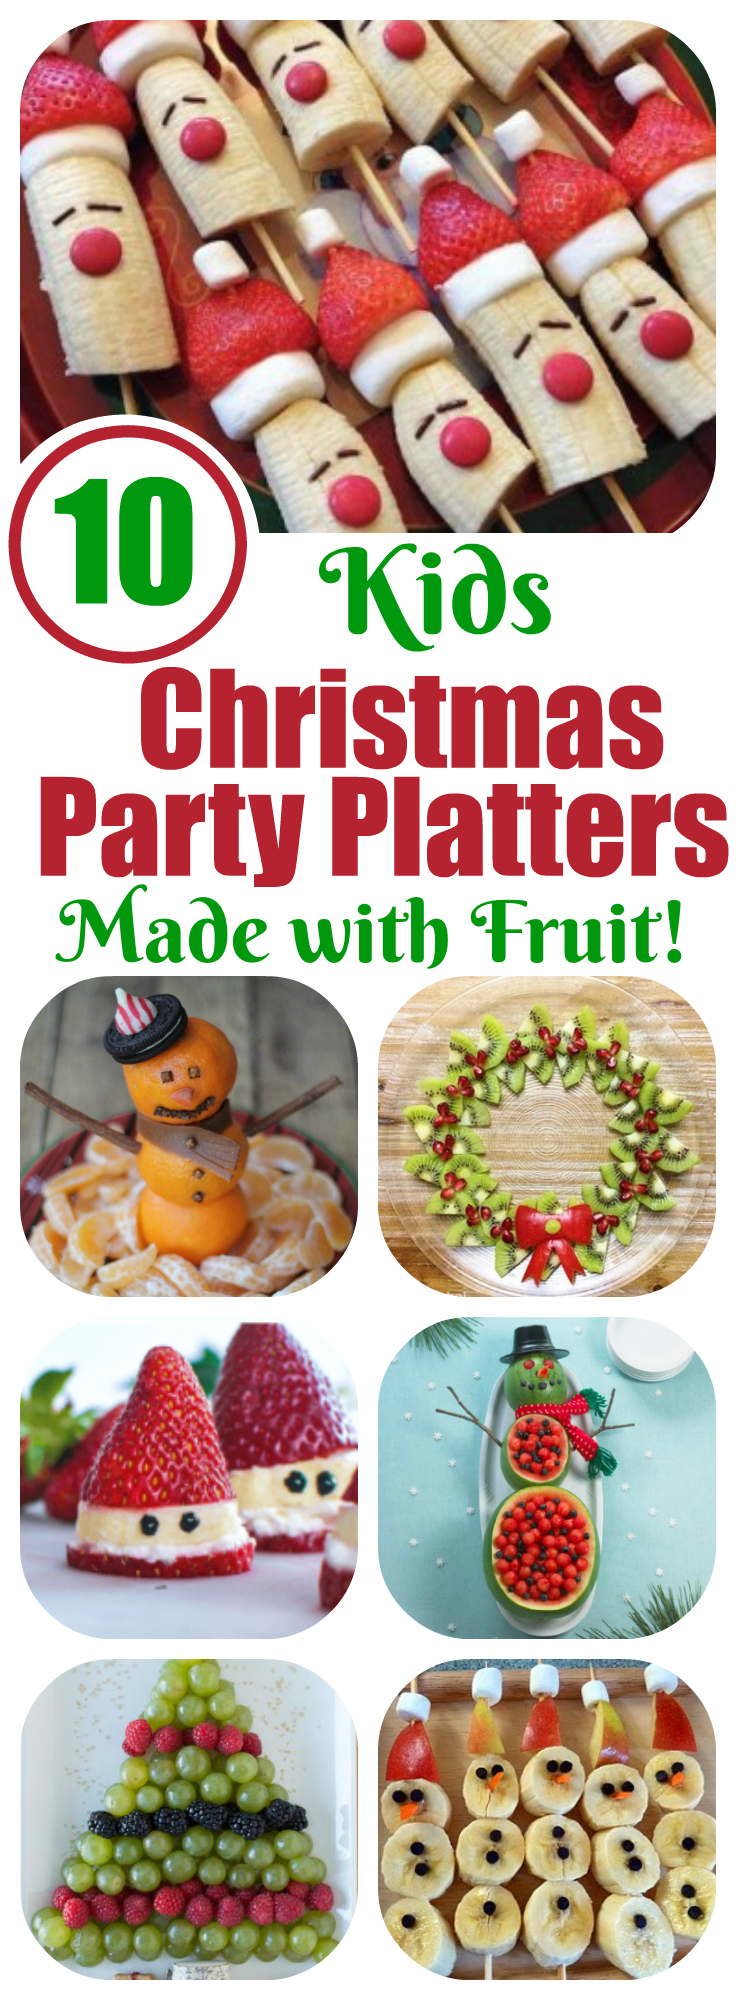 fruit platters for kids 10 christmas party platters letters from